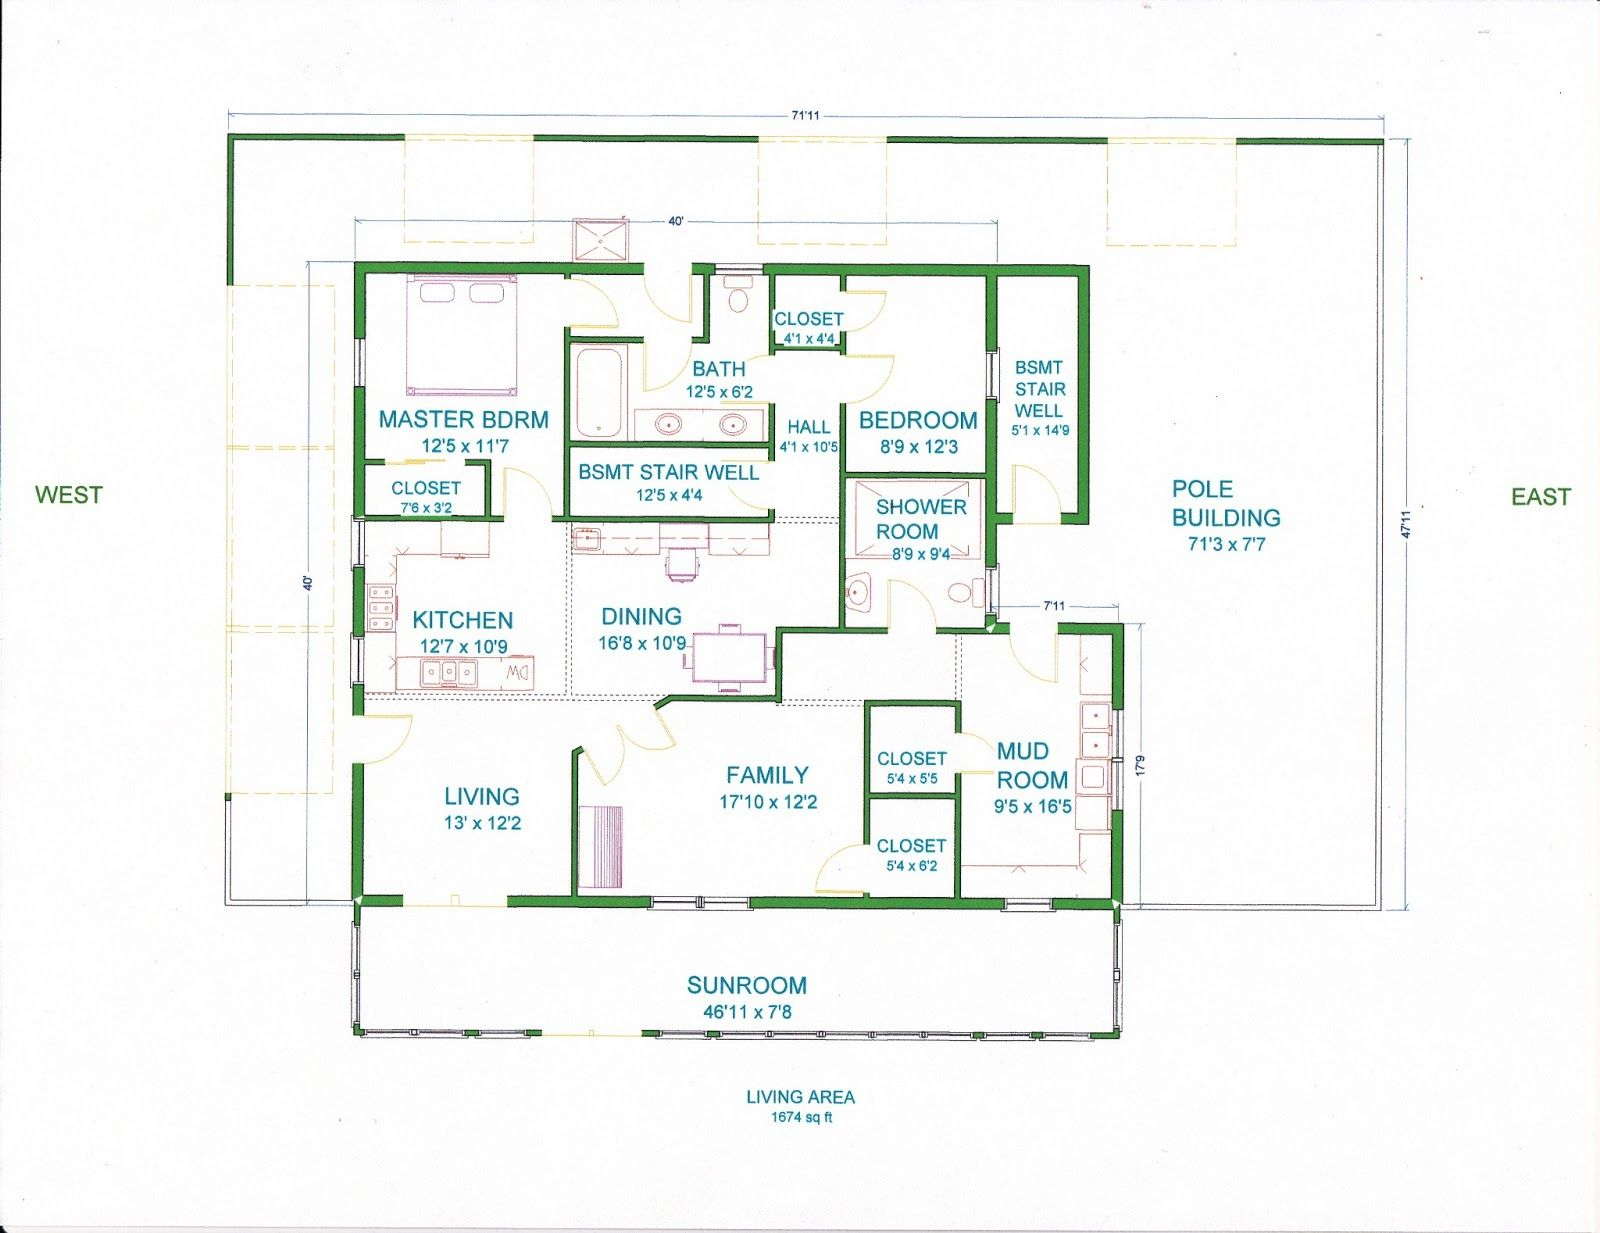 Metal buildings as homes floor plans - Pole Barn Homes Floor Plans 3 House Plans With Pictures Of Designing Pole Barn Home Designs By Best Design Gallery You Can See Pole Barn Homes Floor Plans